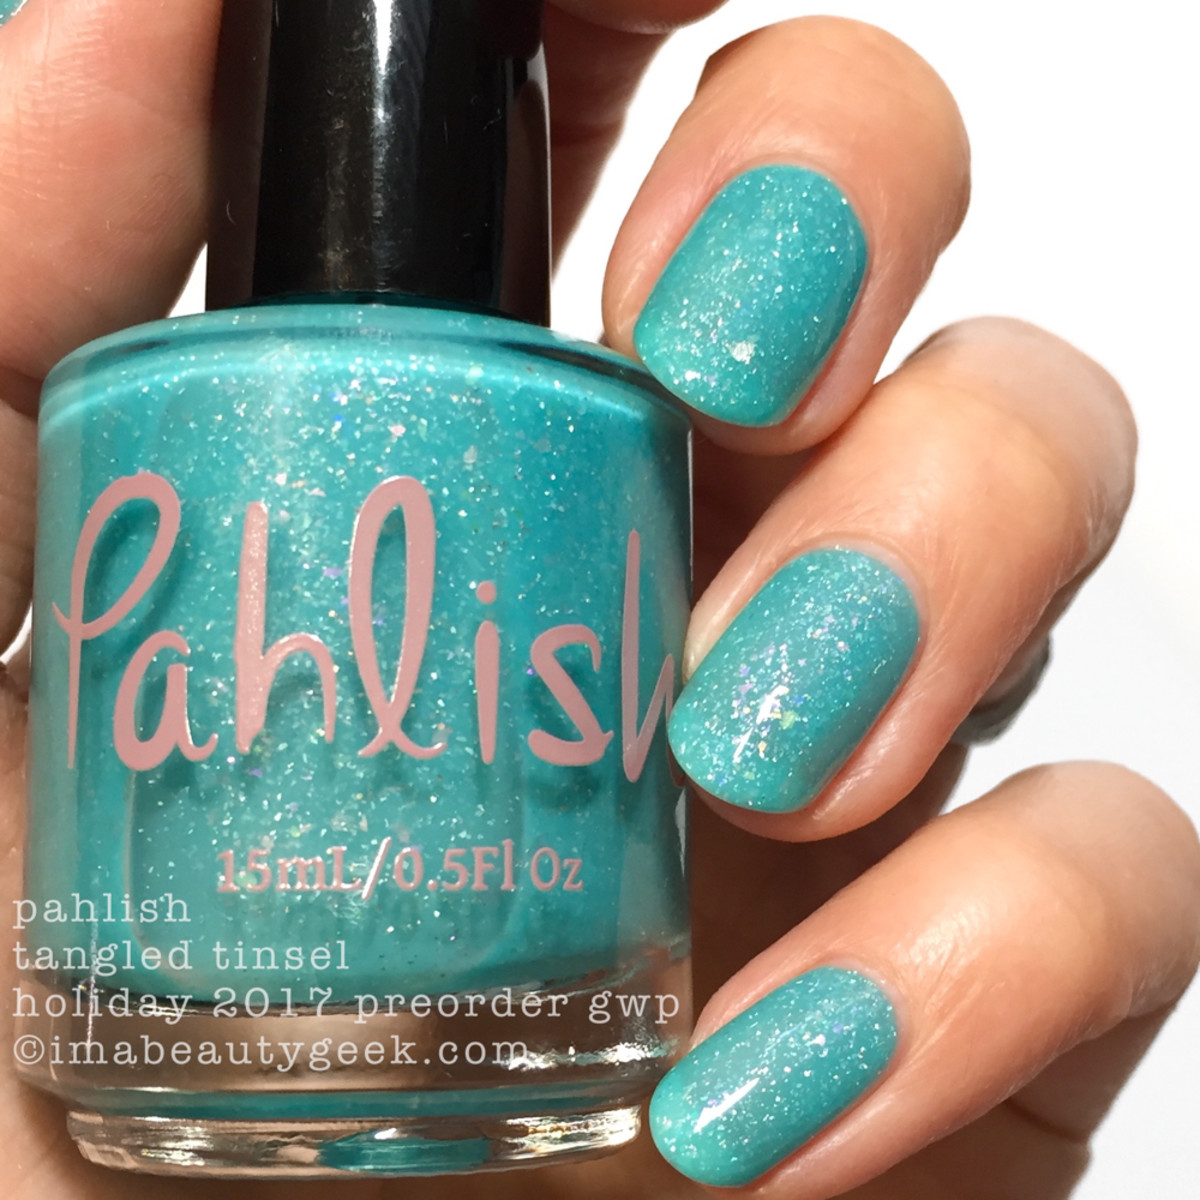 Pahlish Tangled Tinsel GWP 2 - Pahlish 12 Days of Christmas 2017